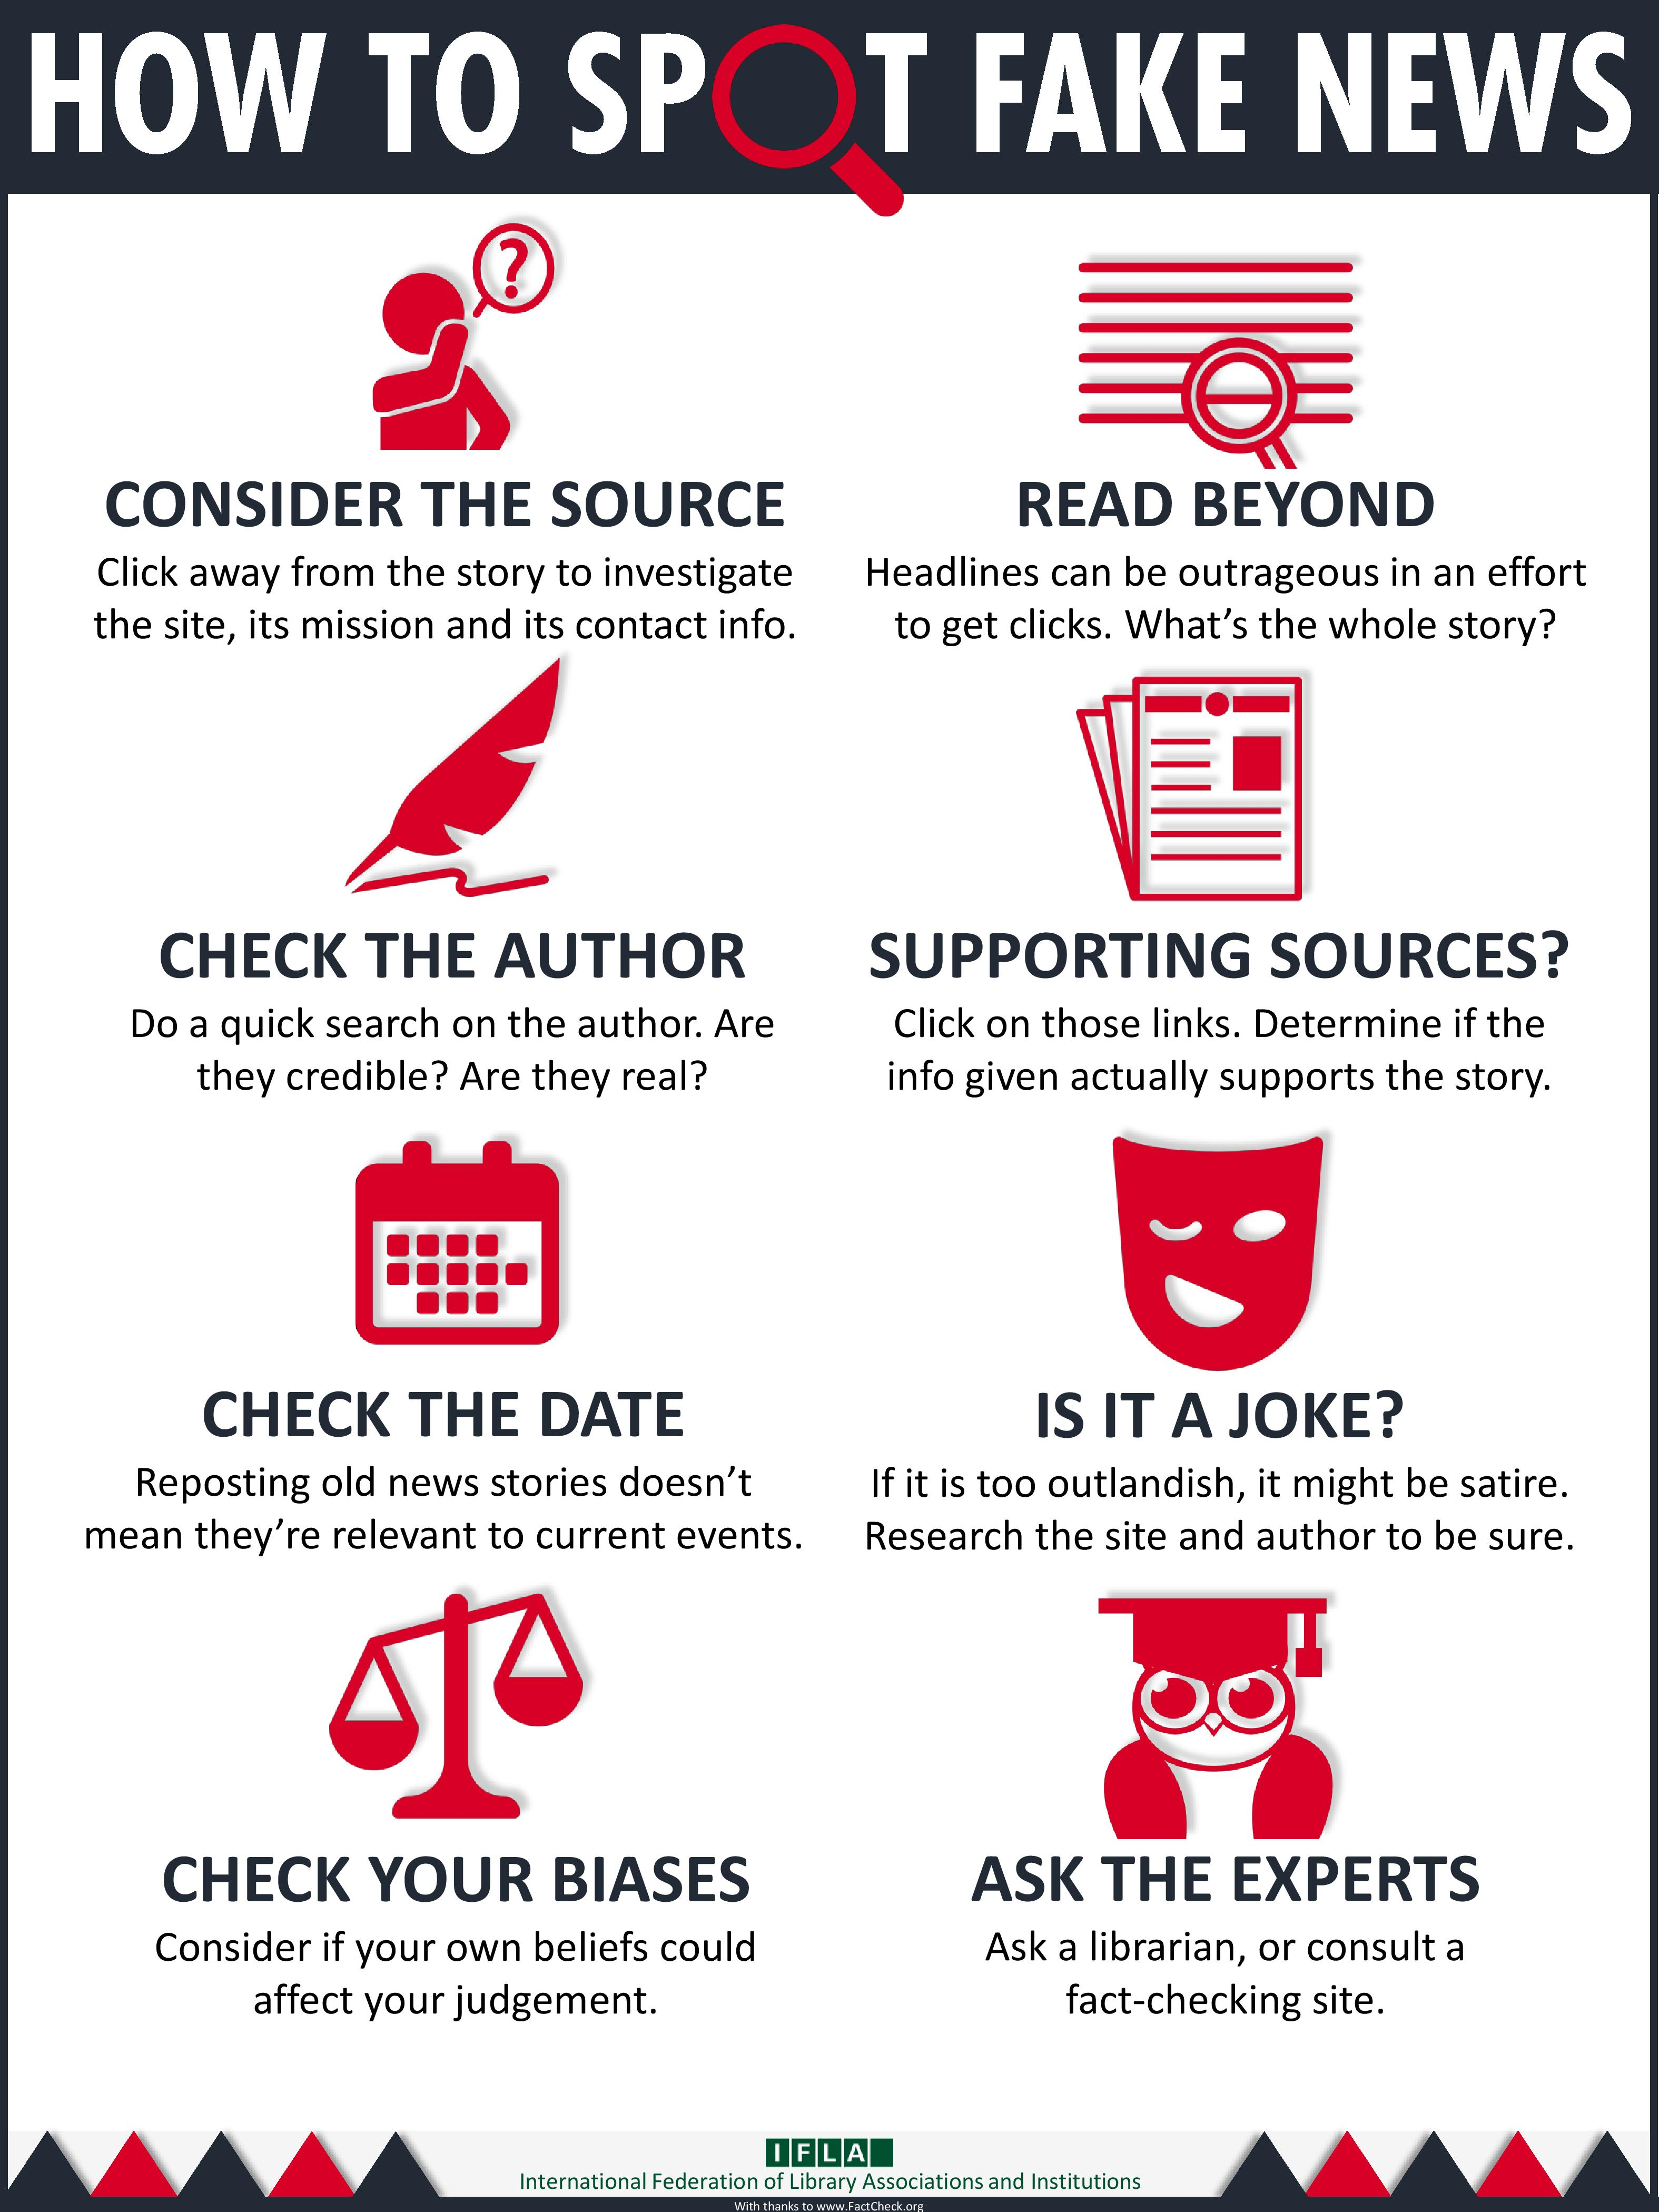 """See """"Transcript of 'How to Spot Fake News' Infographic"""" for content"""